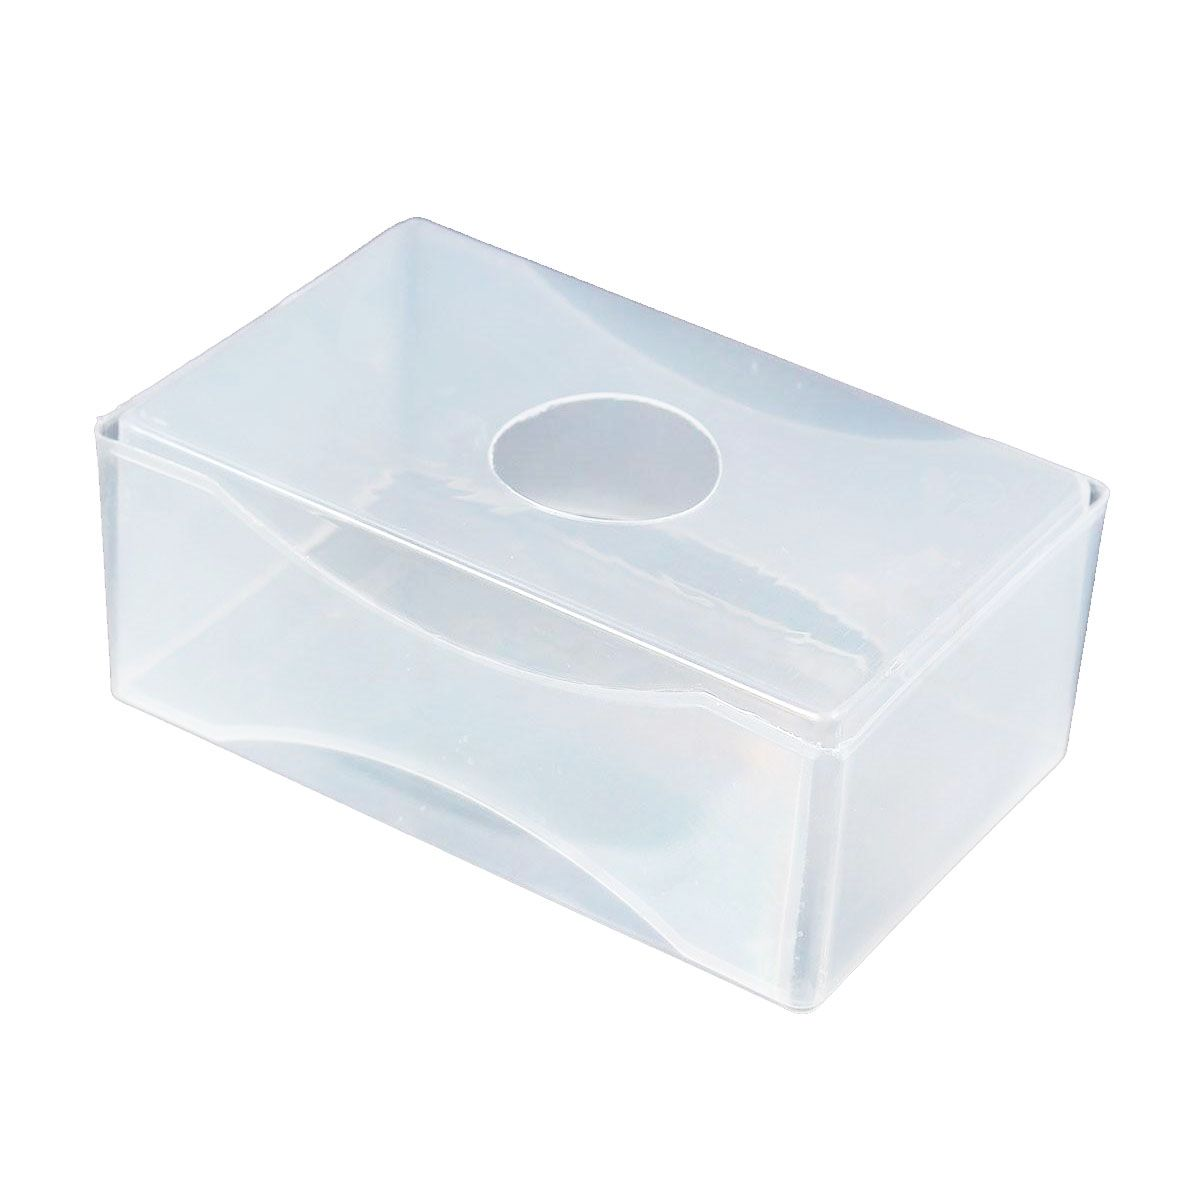 Affordable 10 x Business Card Box Plastic Holders Clear Craft Beads ...